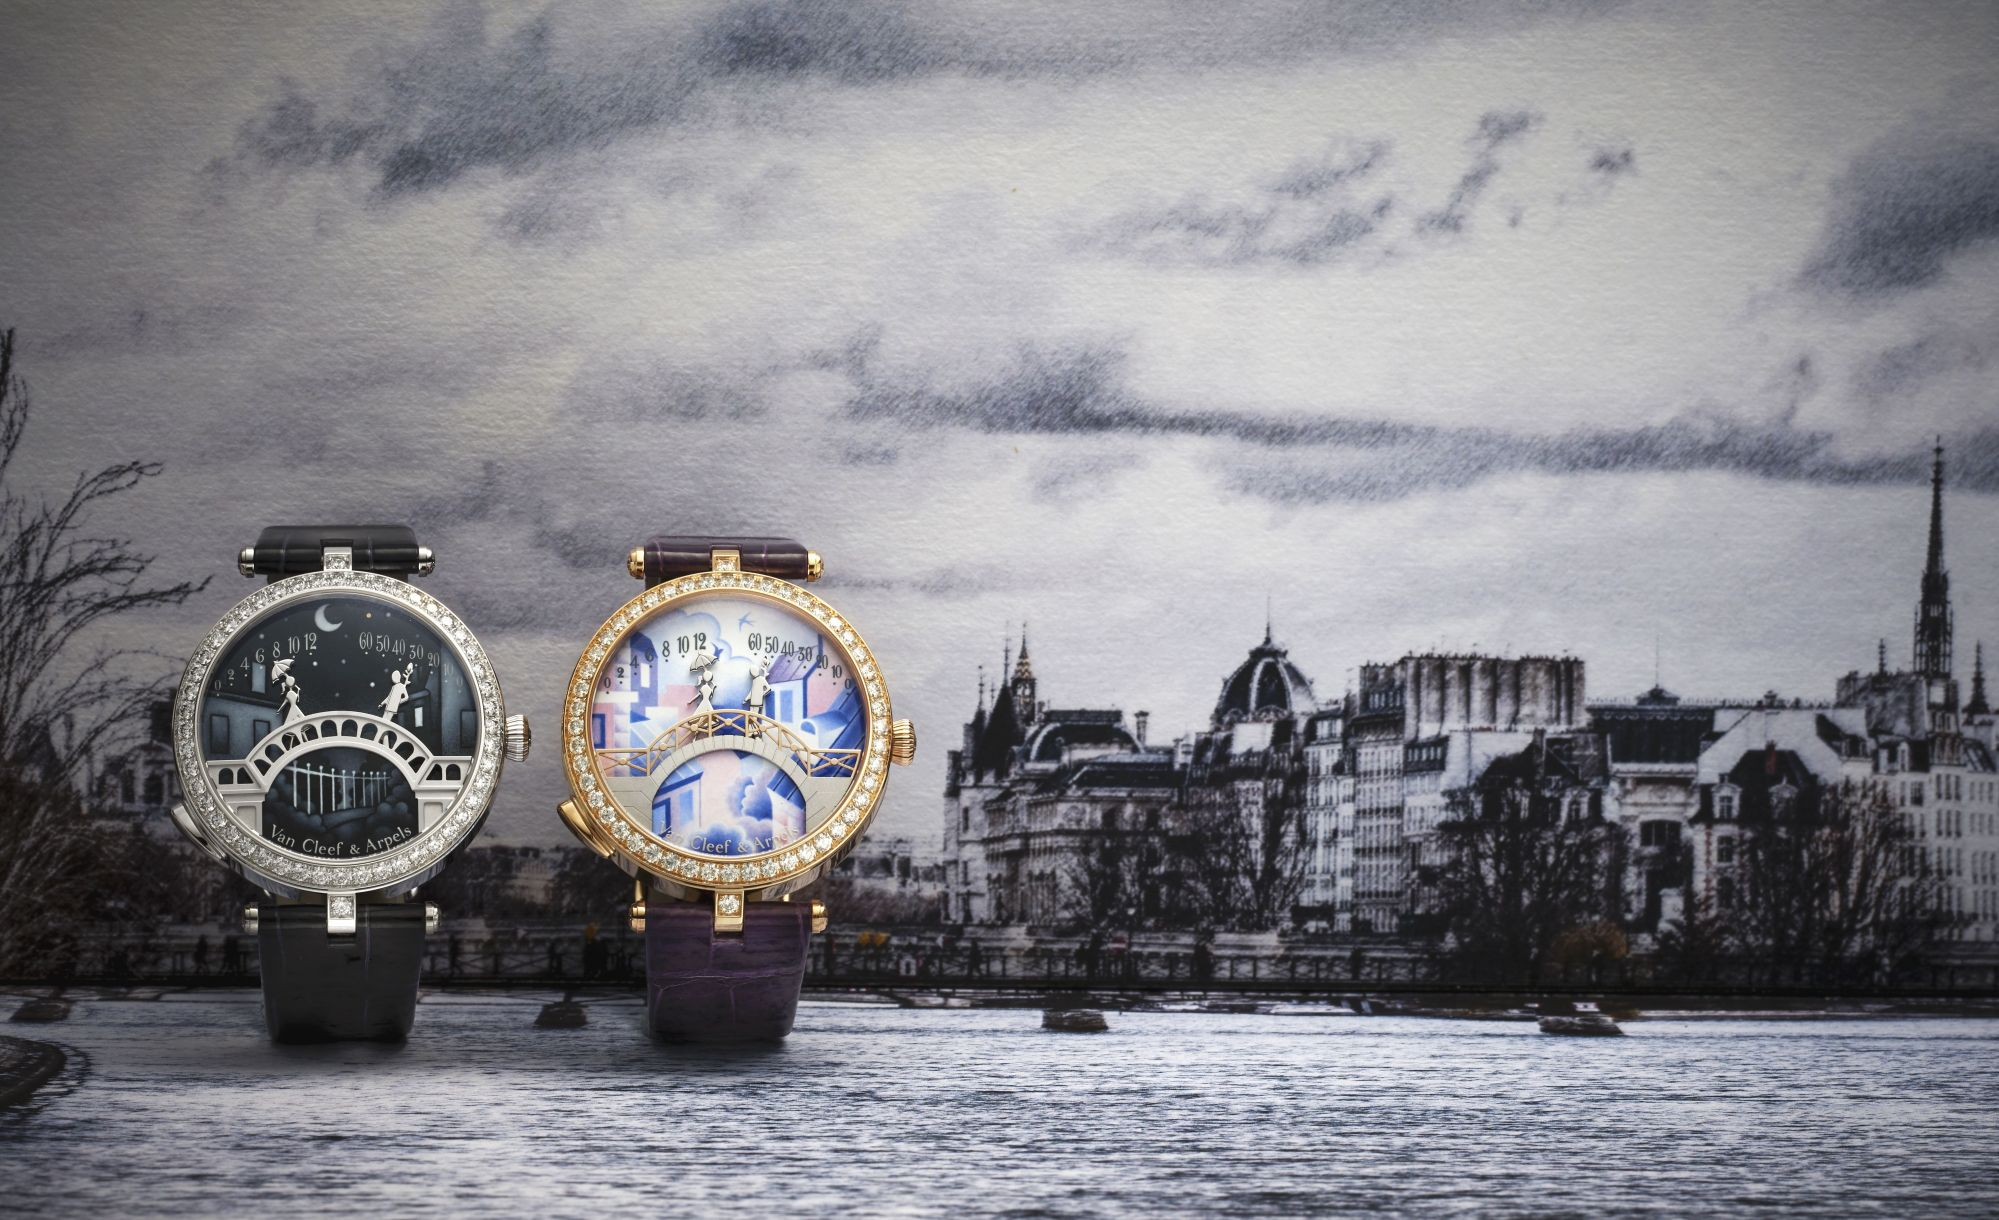 Van Cleef & Arpels Breathes New Life Into The Iconic Lady Arpels Pont Des Amoureux Watch In Its Poetry Of Time Collection